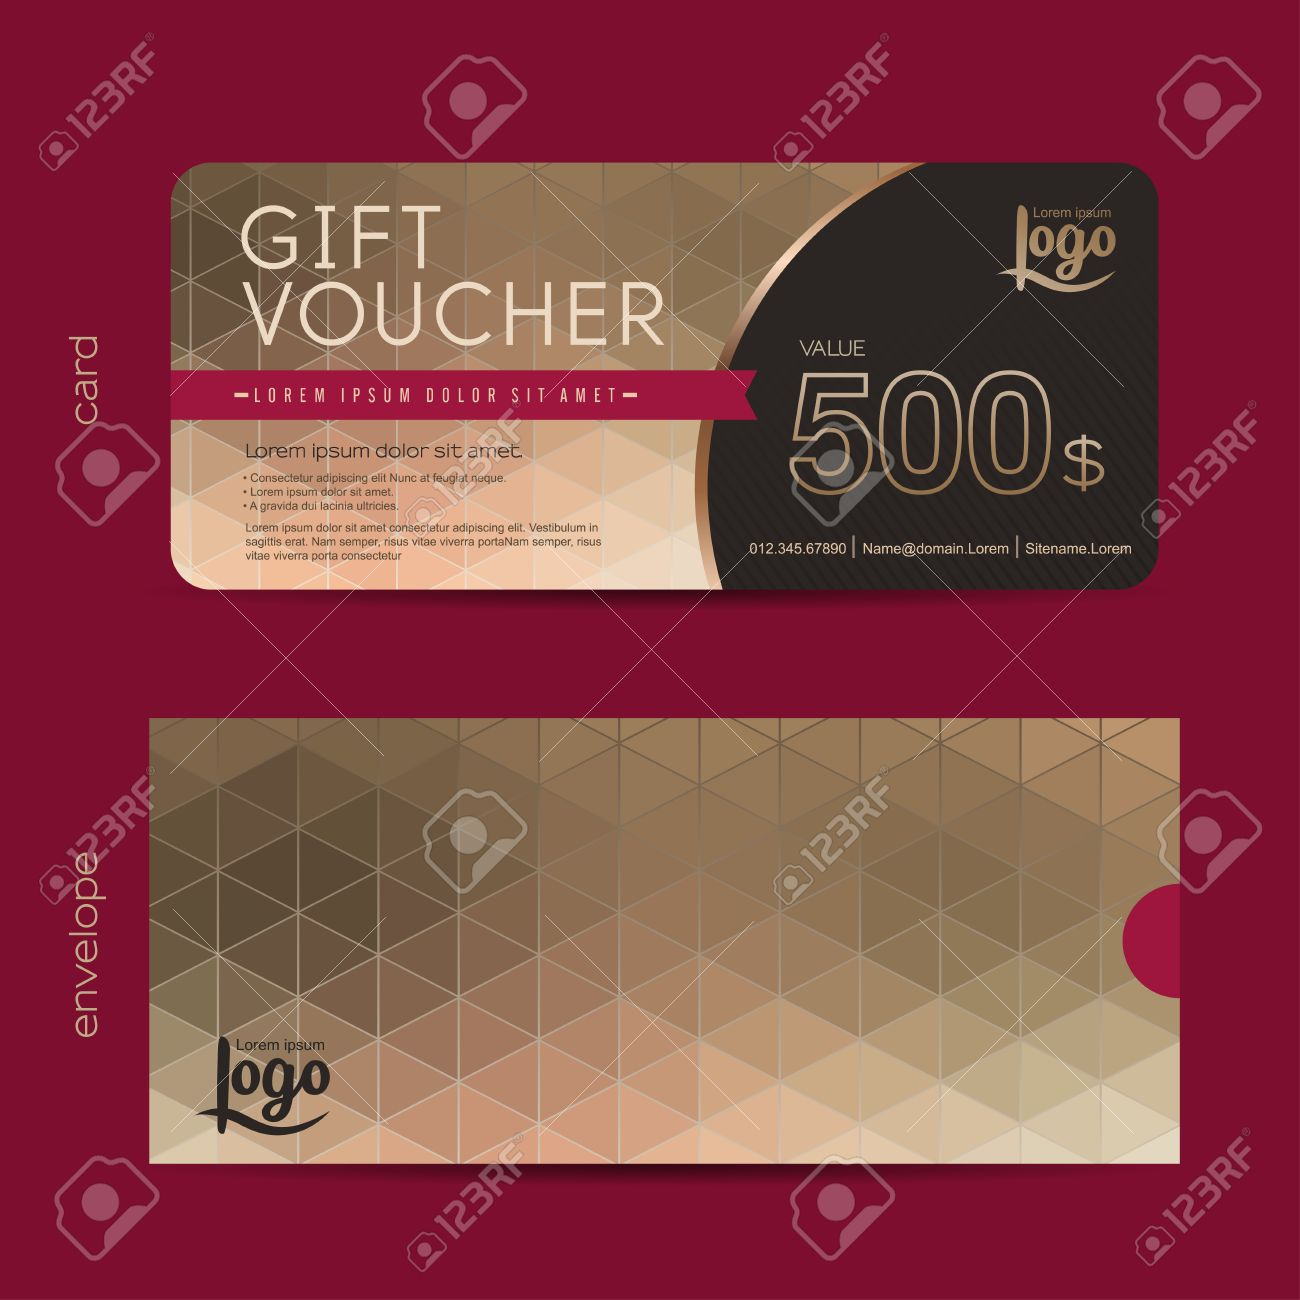 gift voucher template with premium pattern and envelope design cute